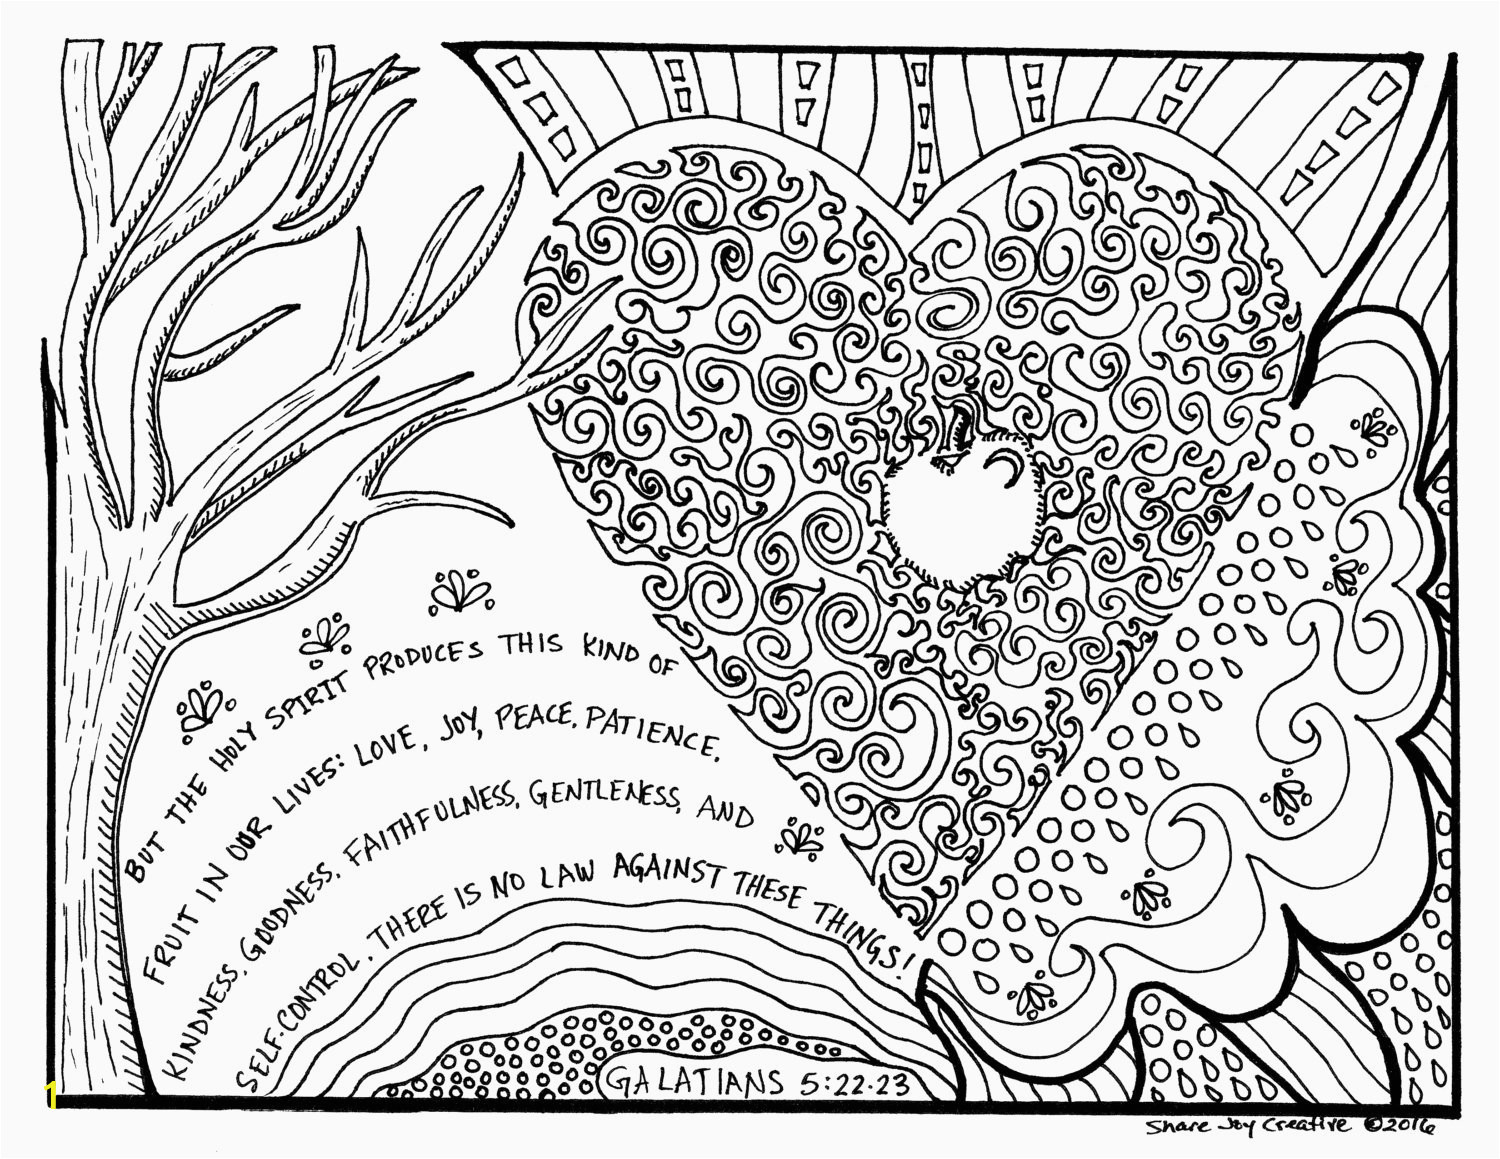 fruit of the spirit coloring page new the fruit of the holy spirit coloring page of fruit of the spirit coloring page